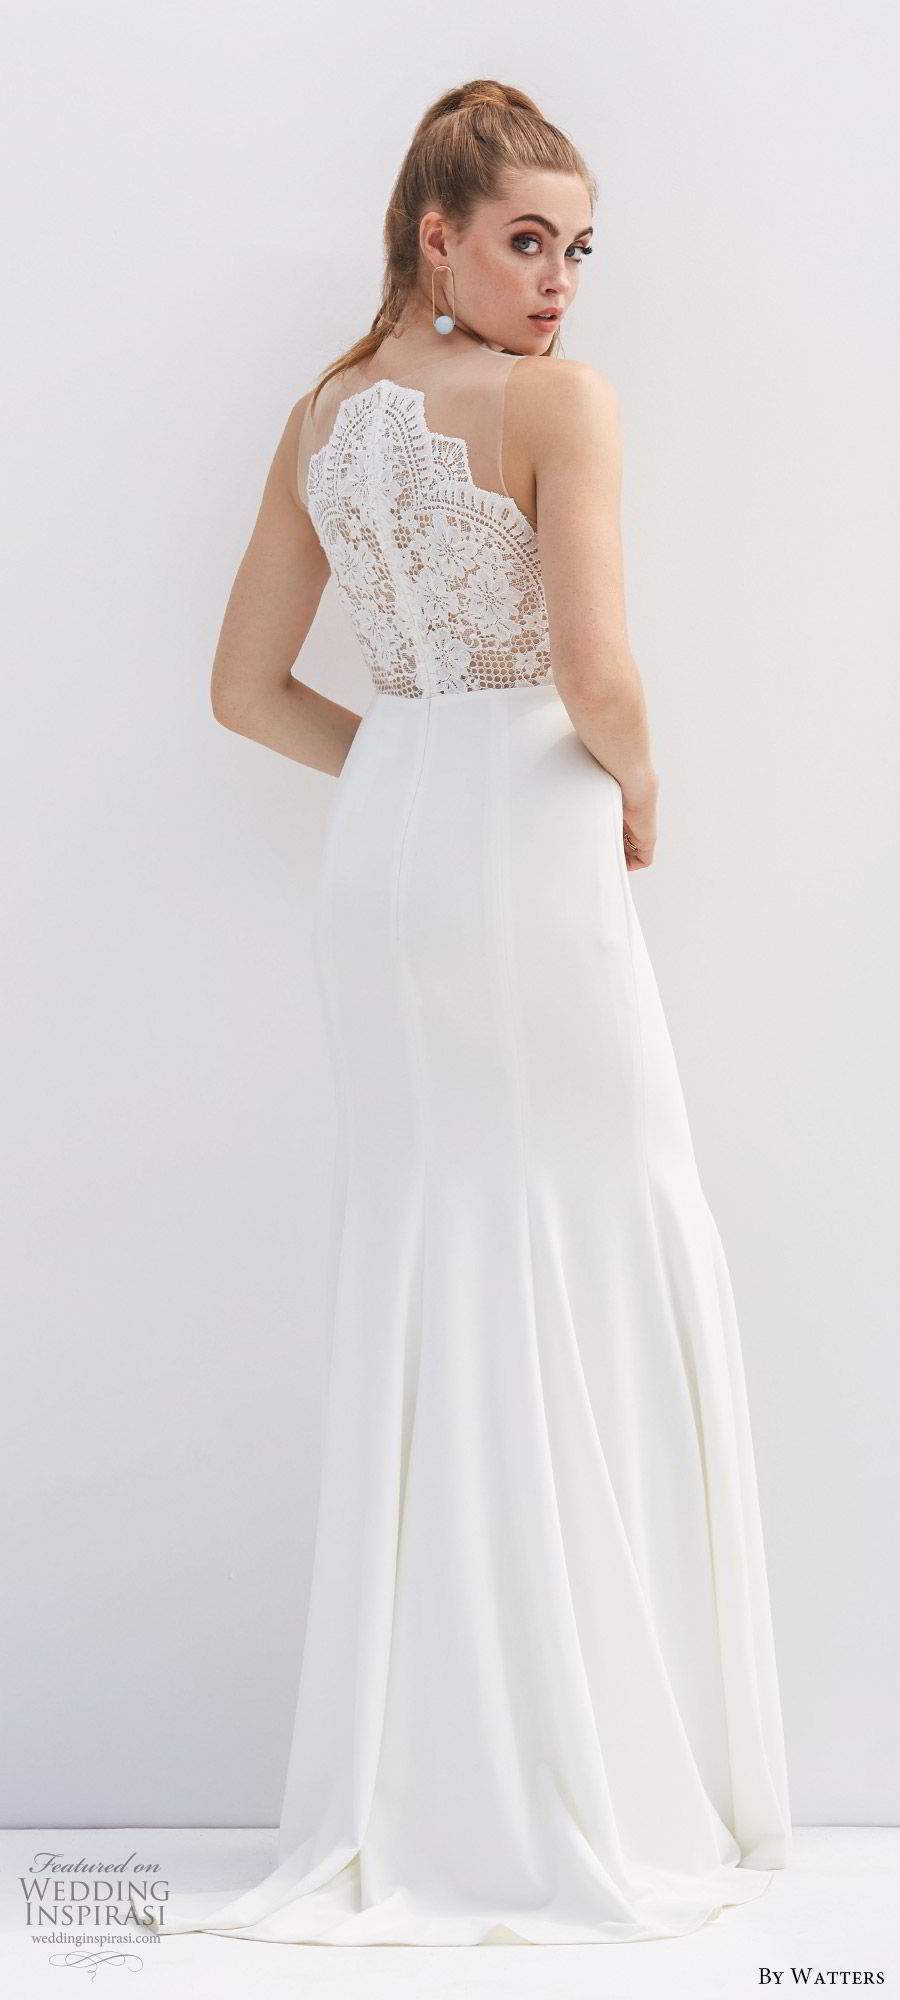 by watters 2020 bridal sleeveless illusion jewel neck sheer lace bodice fit flare sheath trumpet wedding dress (8) clean modern chic bv